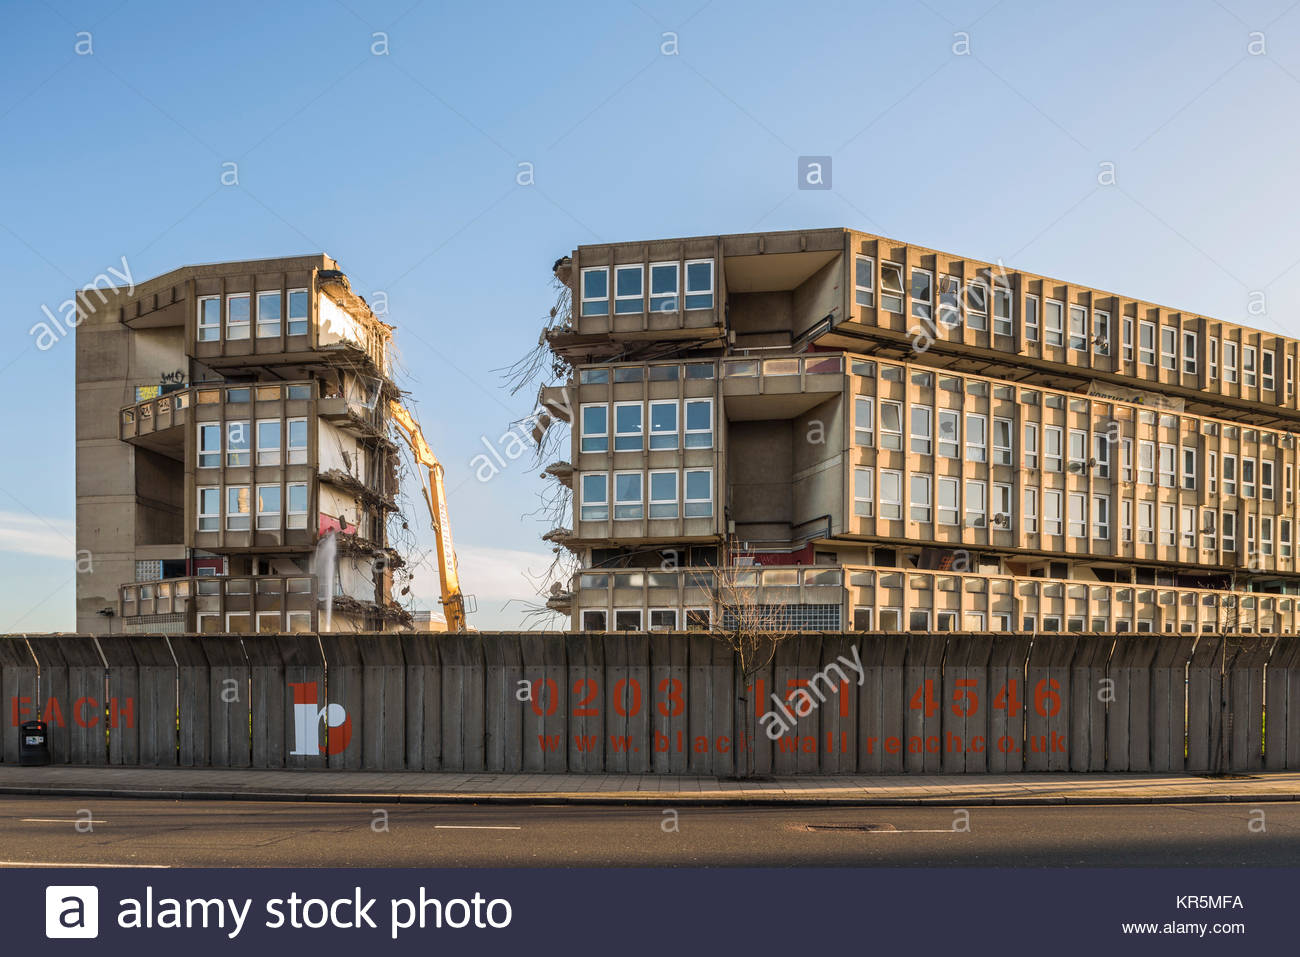 a geography of robin hood gardens estate Wikimapia is an online editable map - you can describe any place on earth or just surf the map discovering tonns of already marked places.